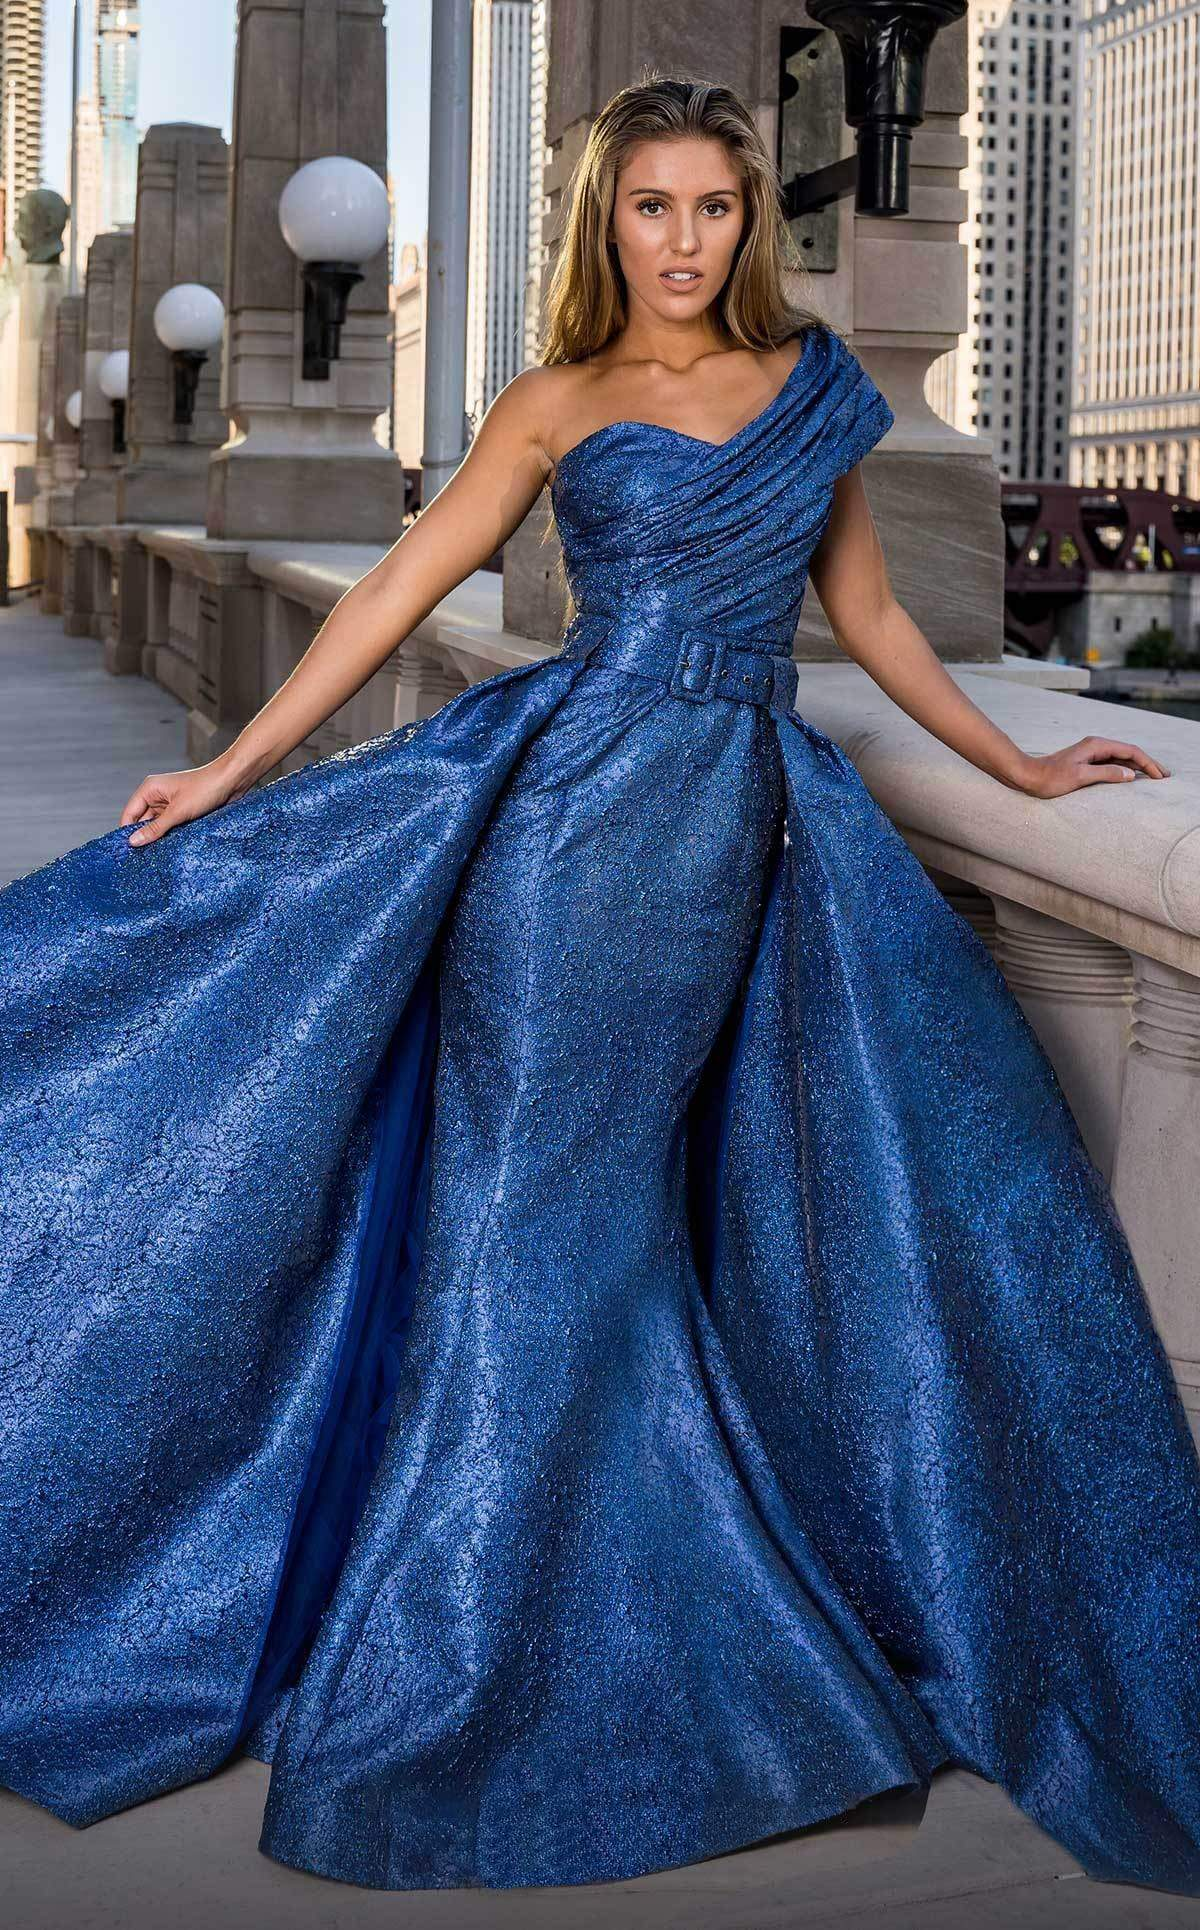 MNM COUTURE - F00613 One Shoulder Ruched Mermaid Dress With Overskirt Prom Dresses